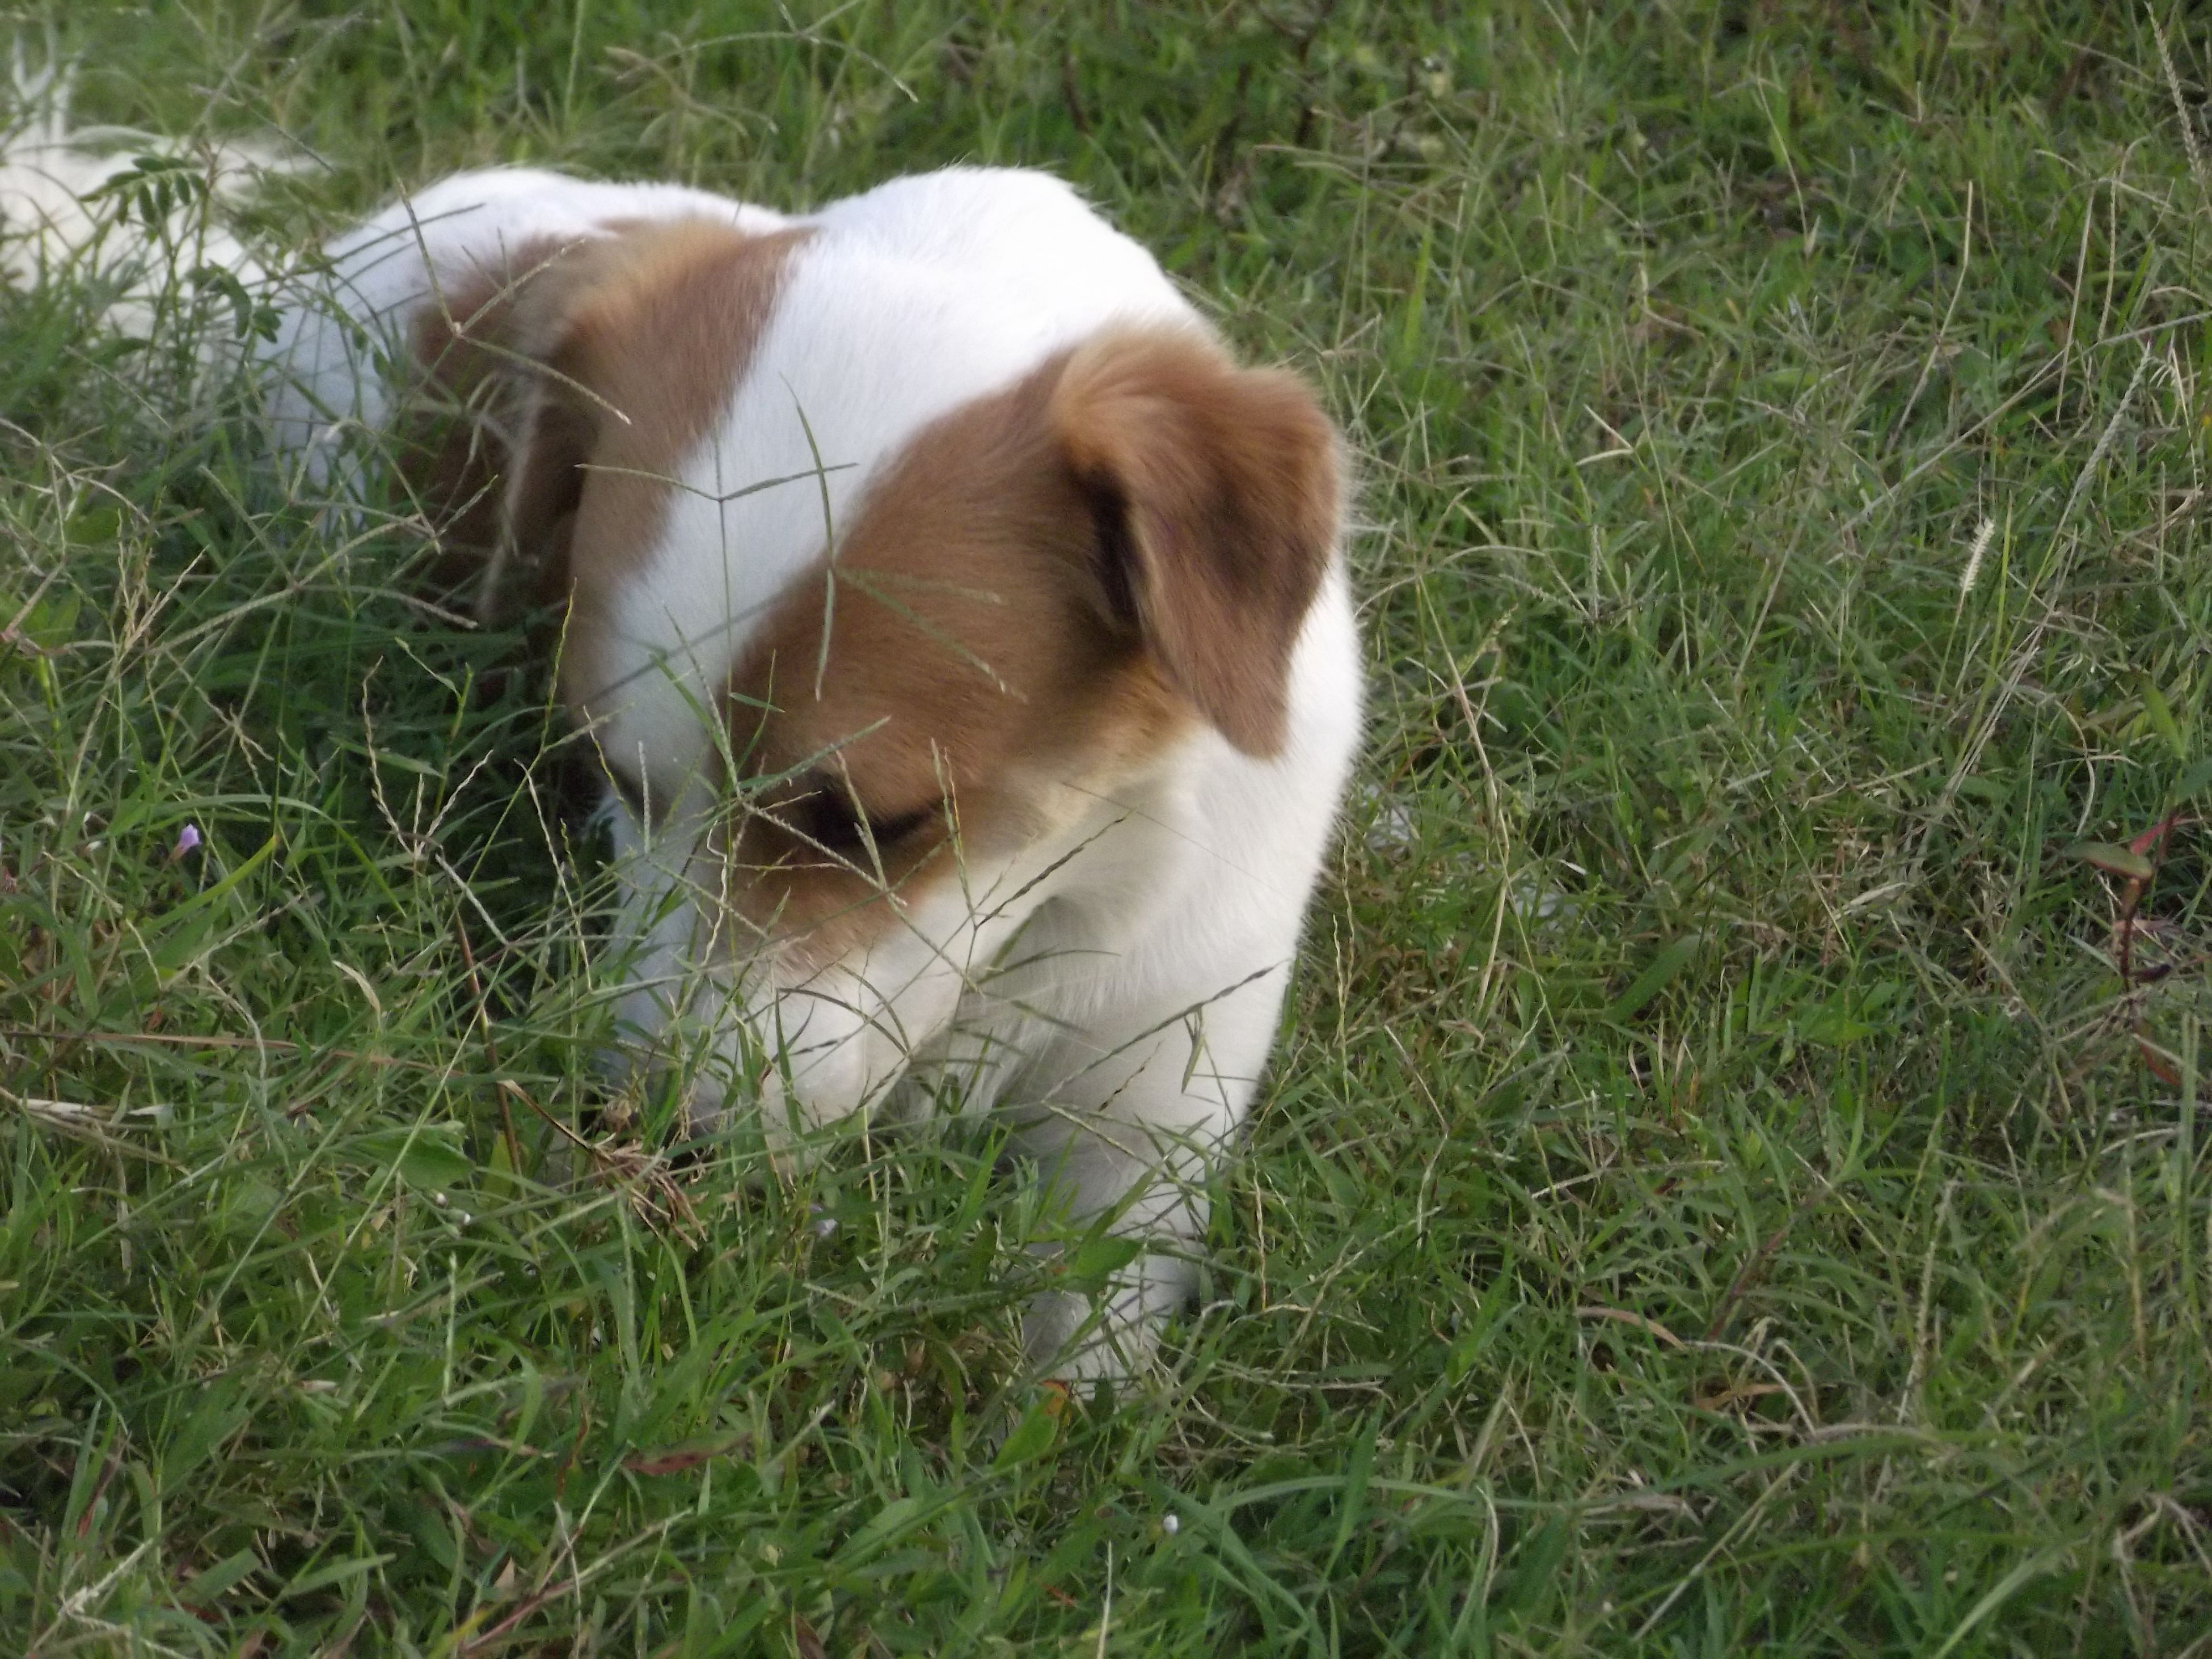 domestic animals, animal themes, grass, mammal, one animal, pets, field, grassy, dog, high angle view, relaxation, livestock, no people, lying down, nature, white color, outdoors, day, resting, green color